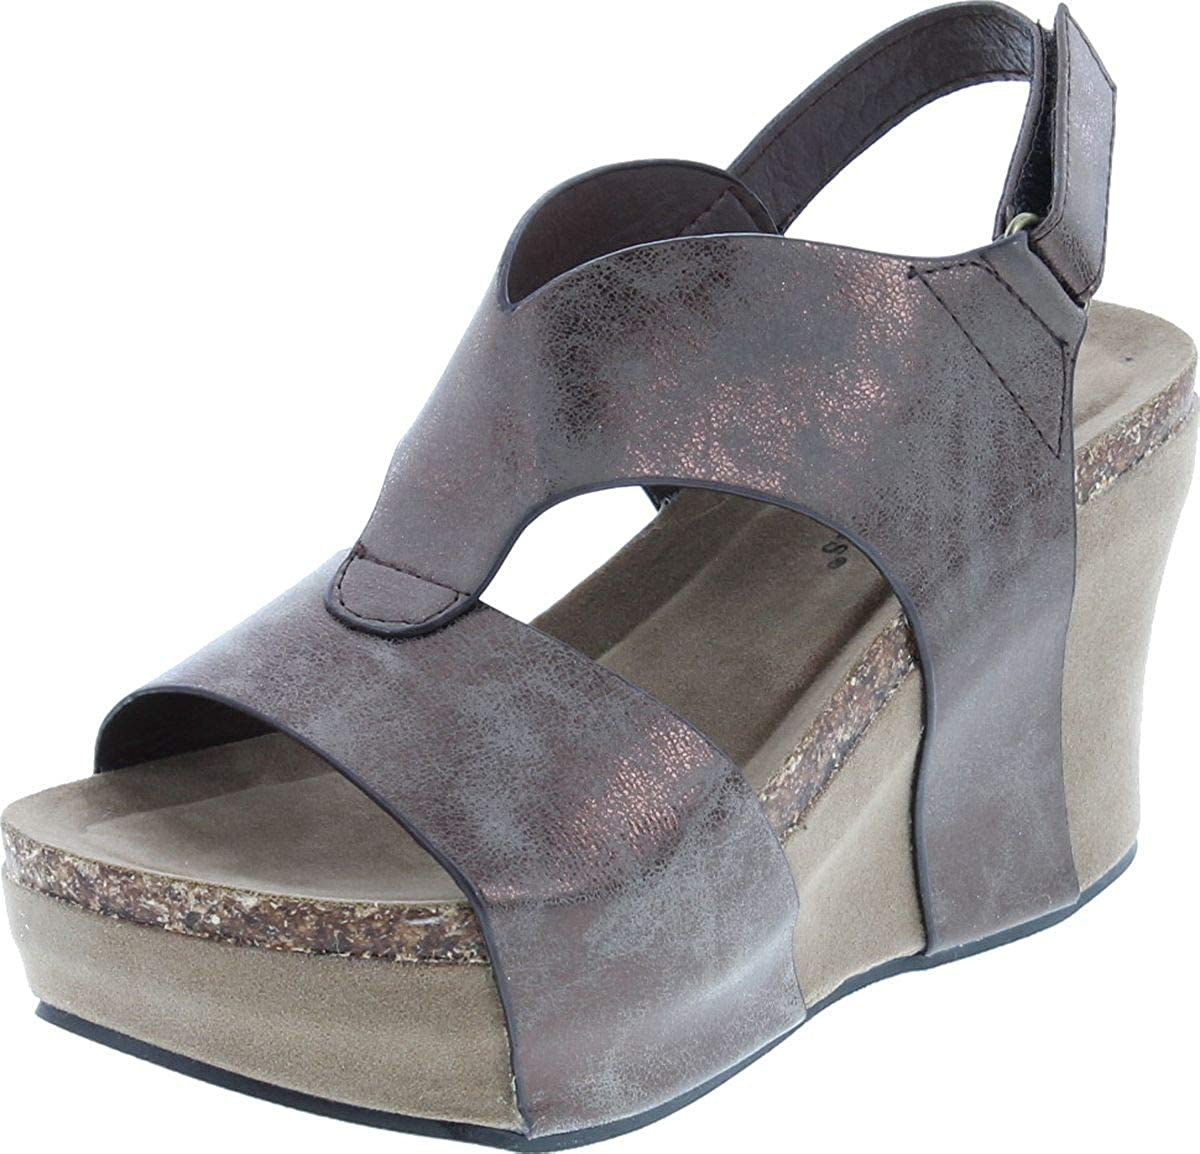 Pierre Dumas Women's Hester-6 Our shop OFFers the best Indianapolis Mall service Sandal Wedge